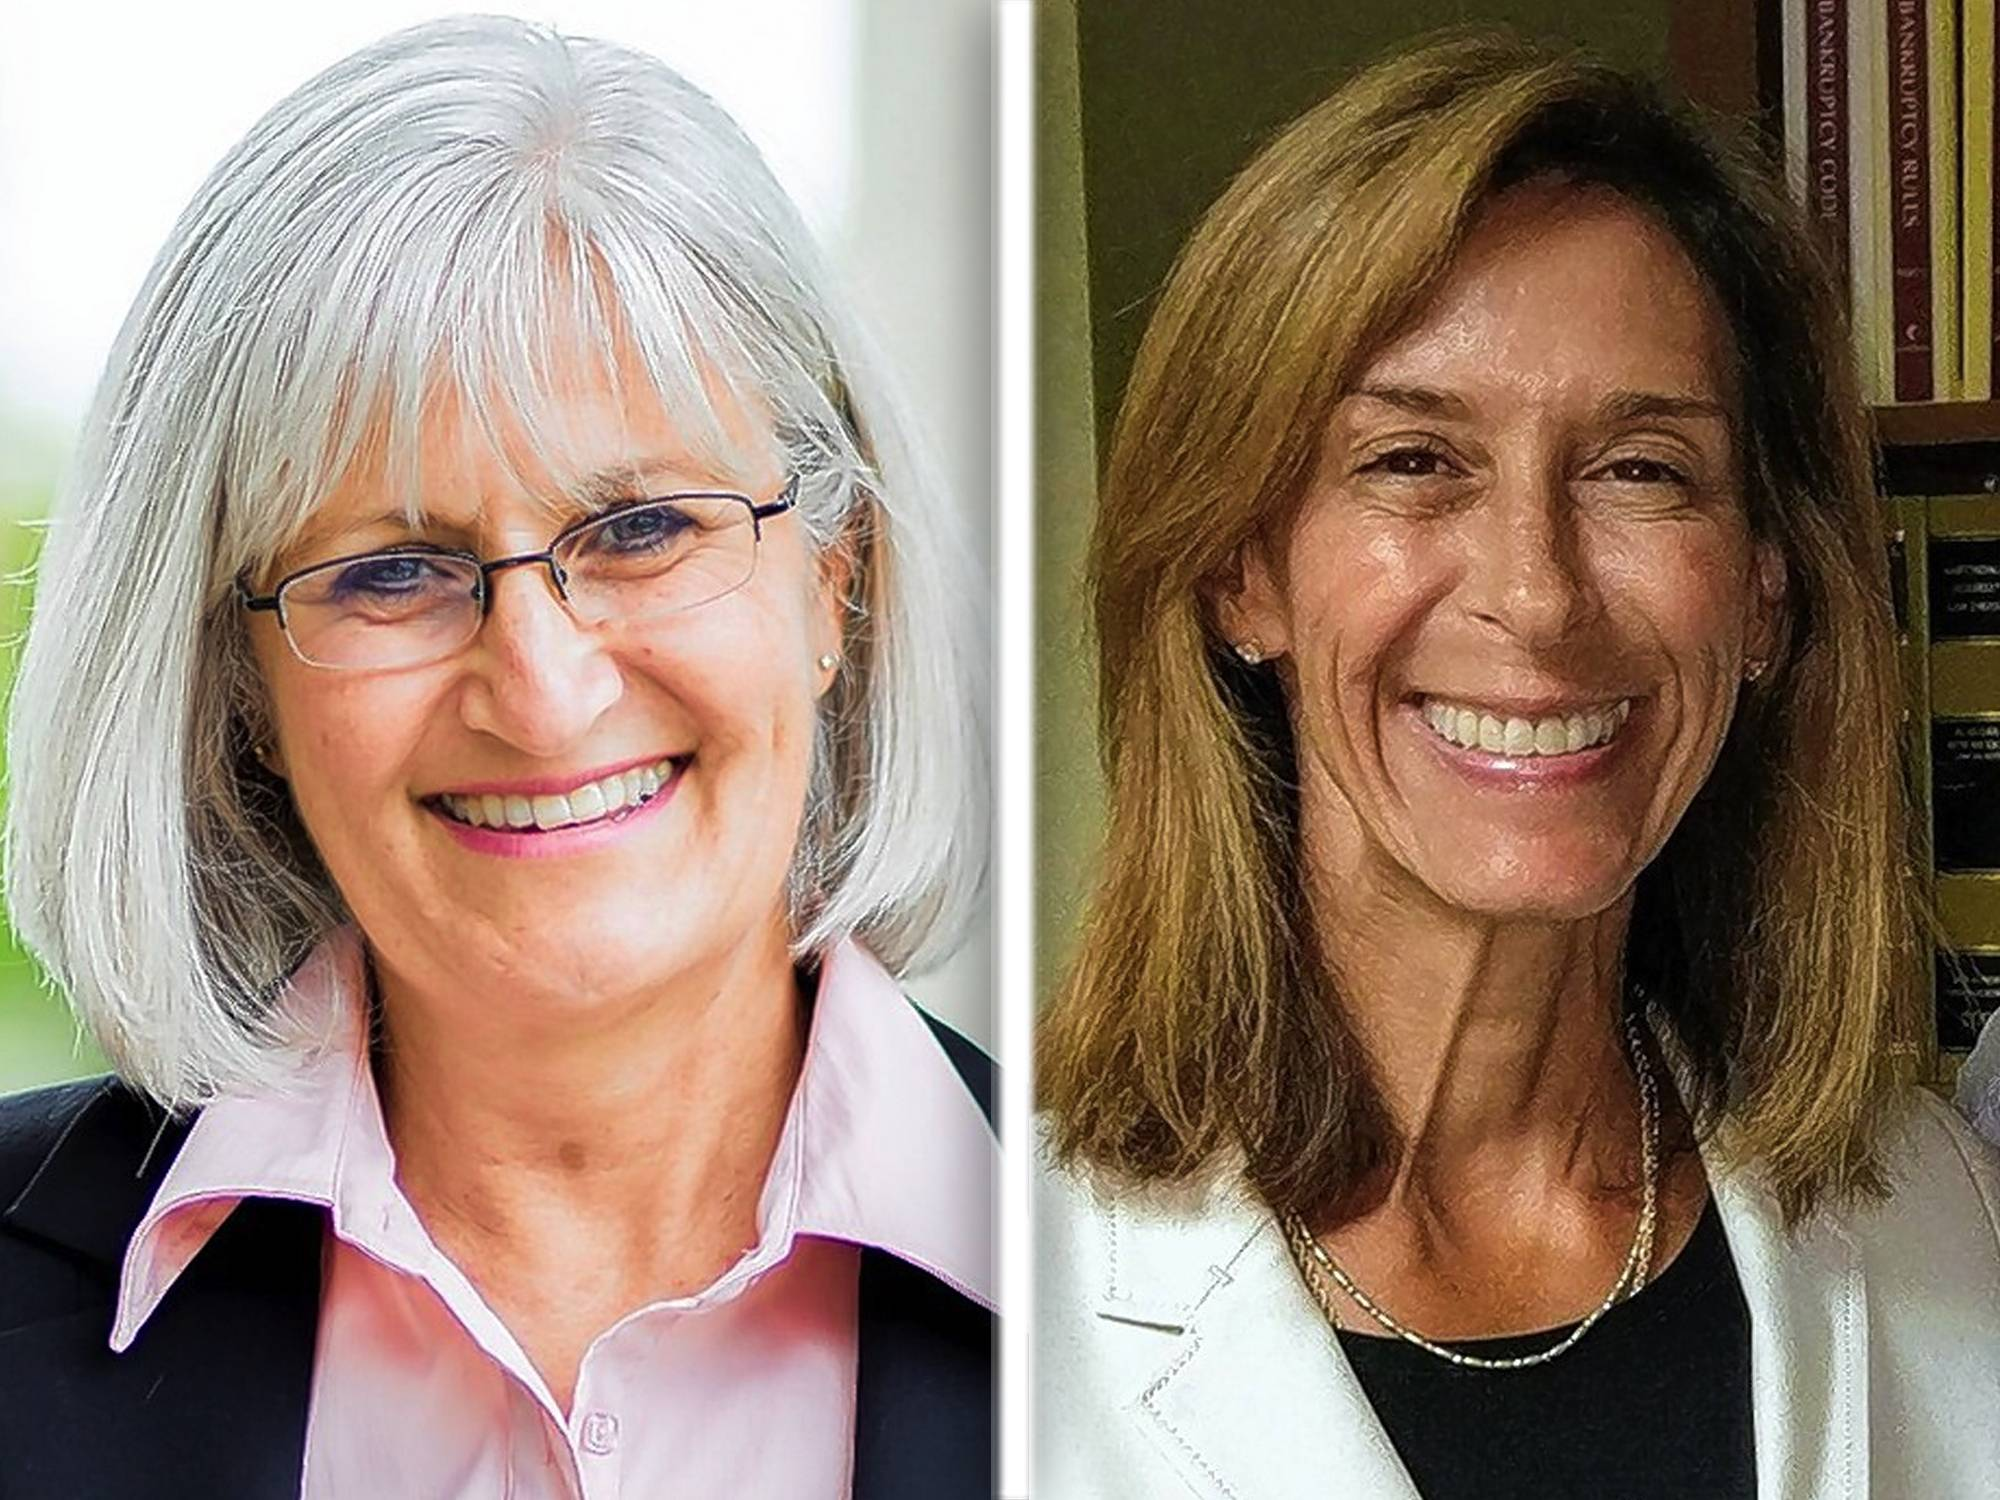 Just one vote separates 51st District House candidates Miller Walsh and Edly-Allen